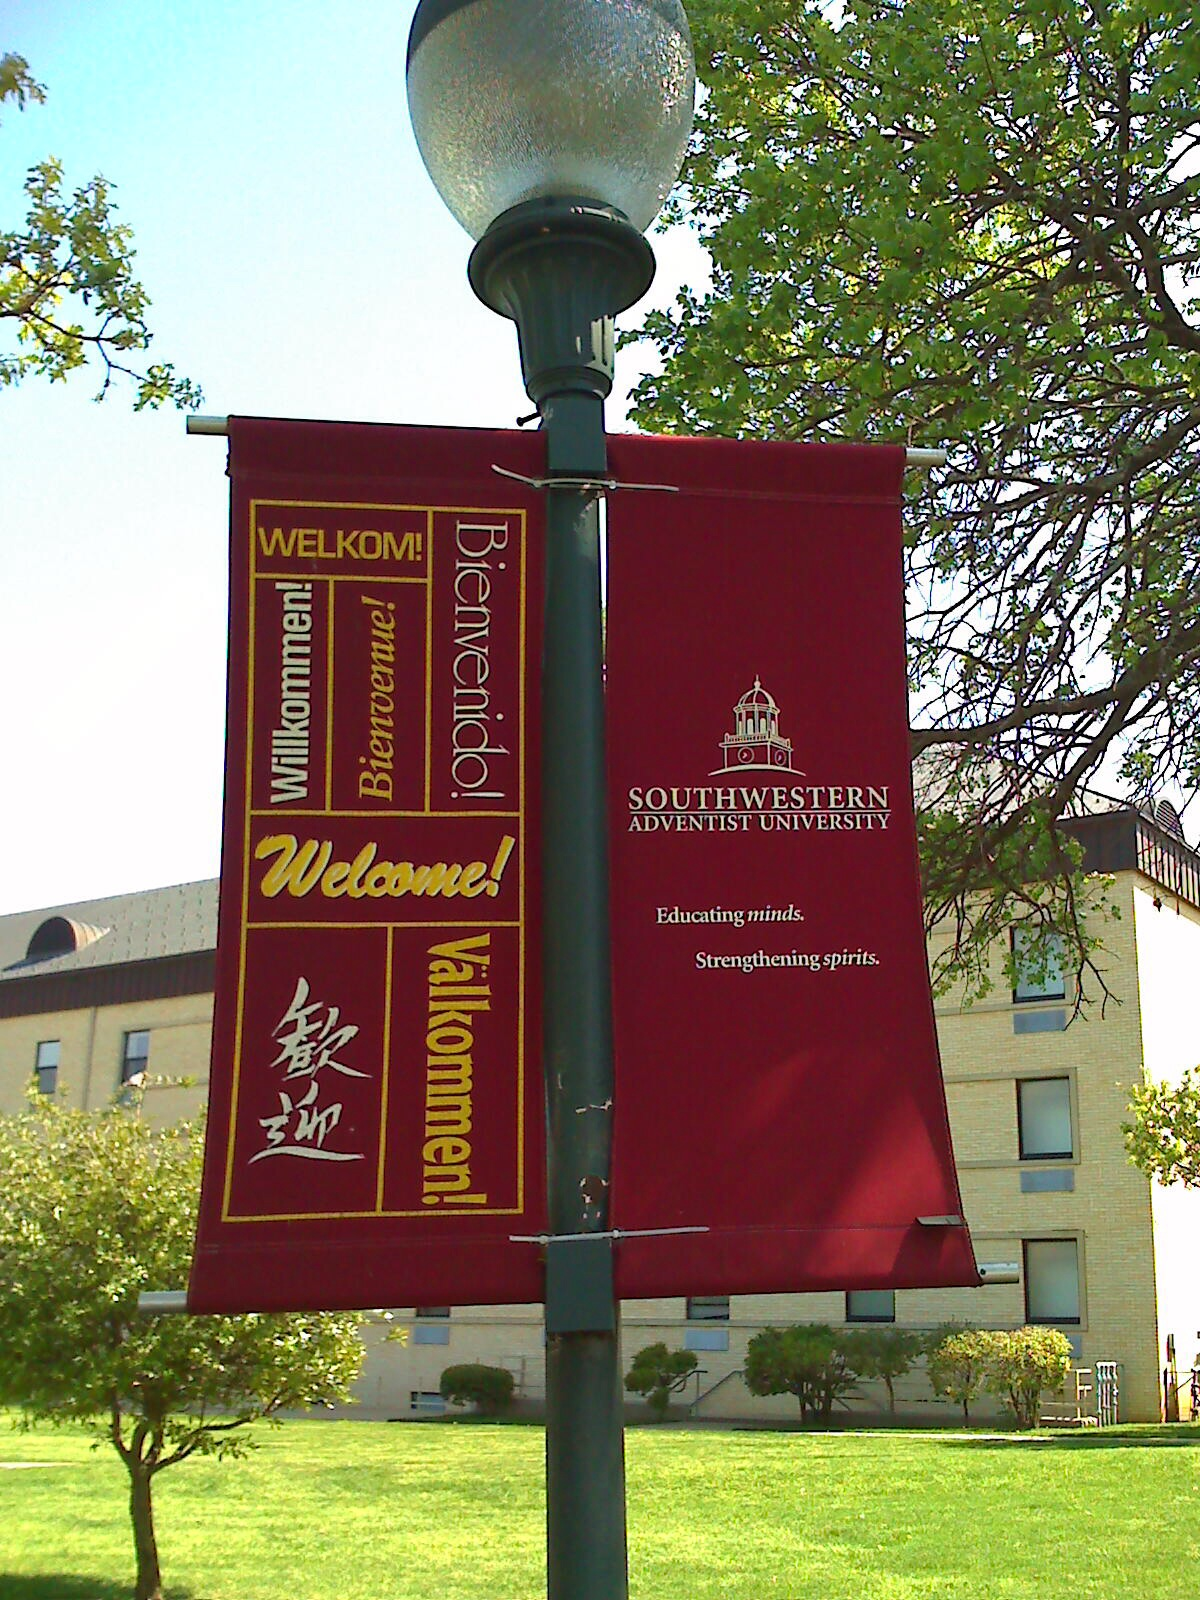 Southwestern to accept only registered Republicans as students